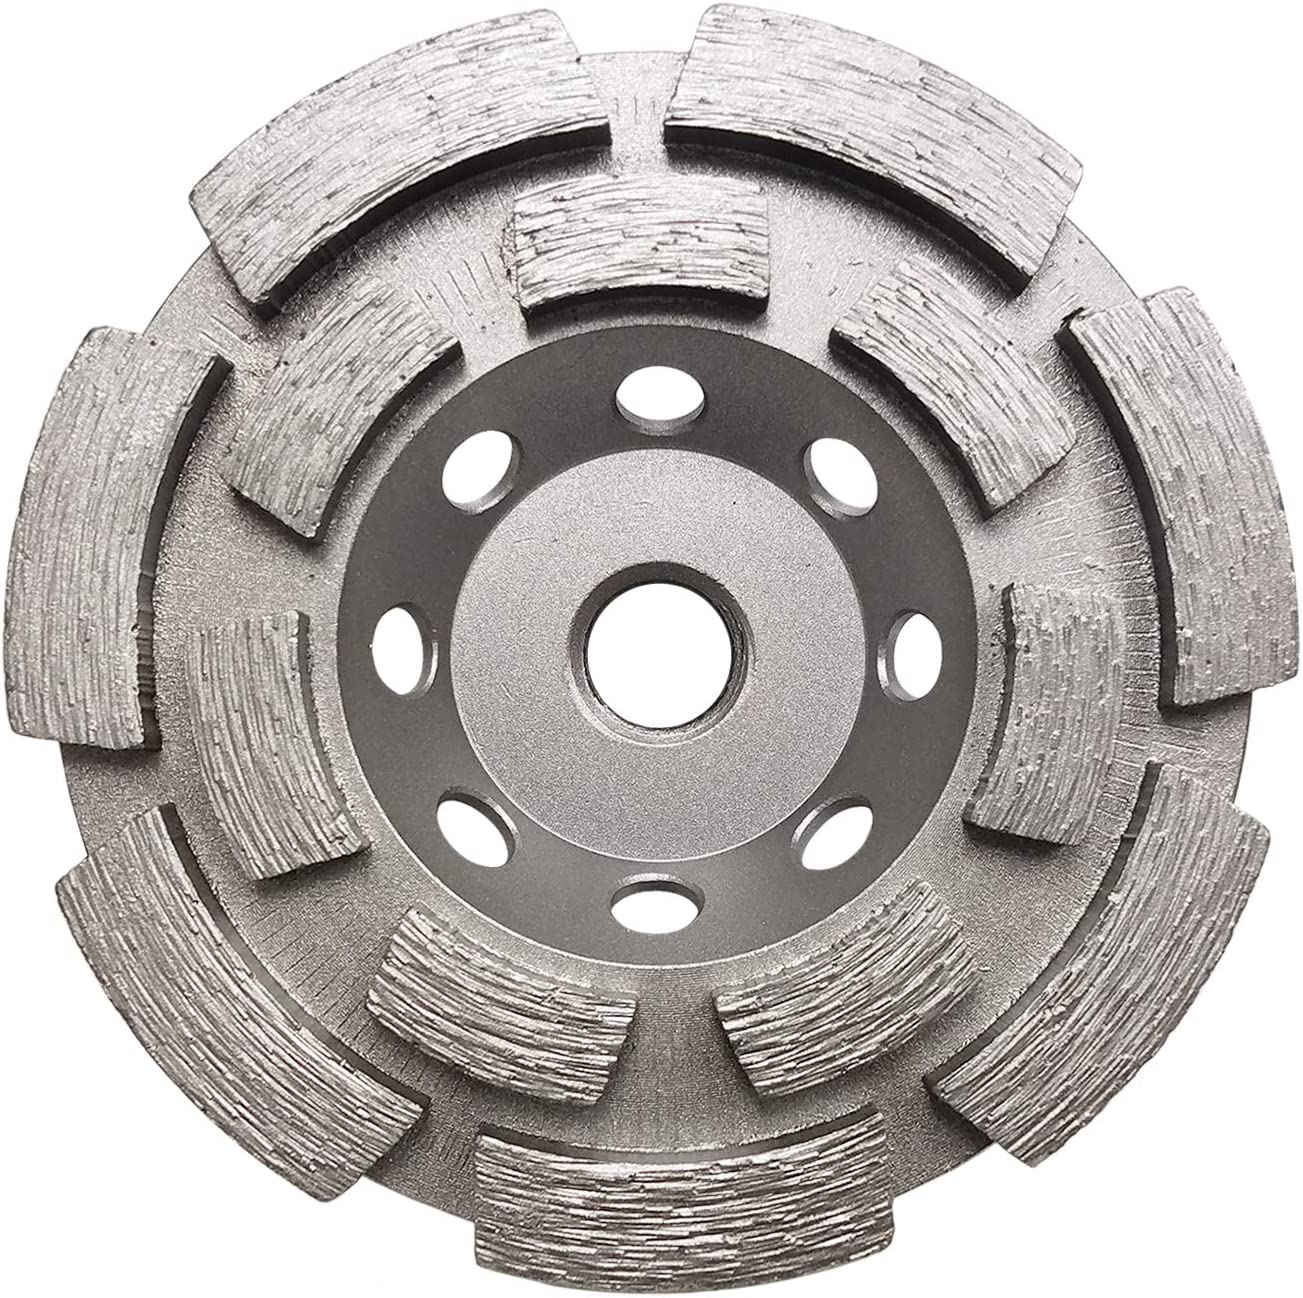 Double Row Segments GCD045FCP Concord Blades  4-1//2-Inch Diamond Cup Wheel Fieldstone and other Masonry Surfaces with 5//8-11 Thread for grinding Concrete